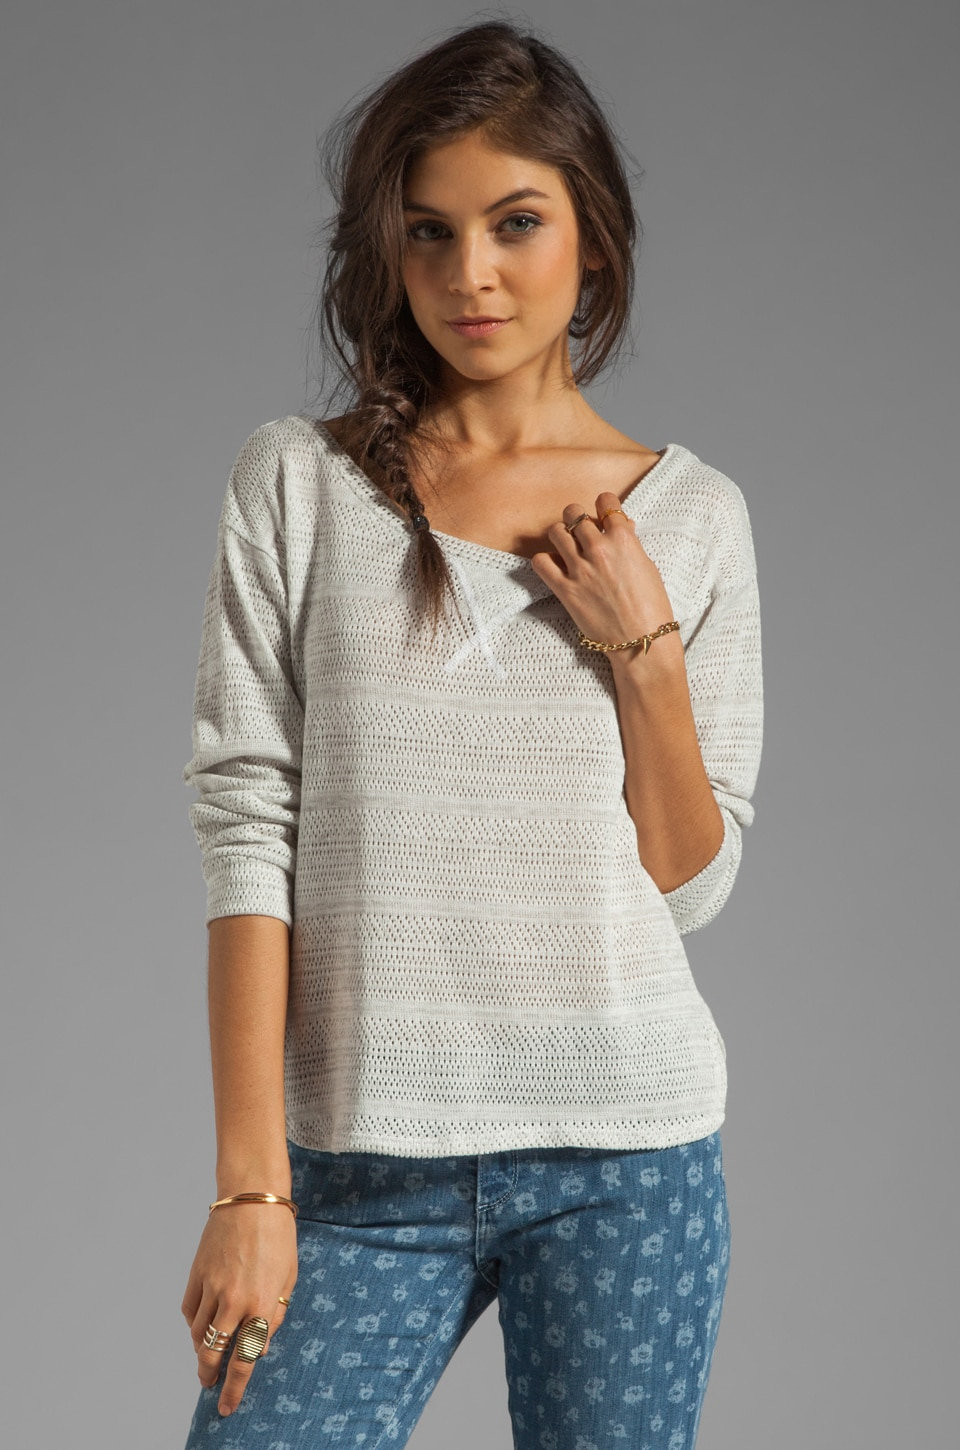 AG Adriano Goldschmied Relaxed Pullover in Heather